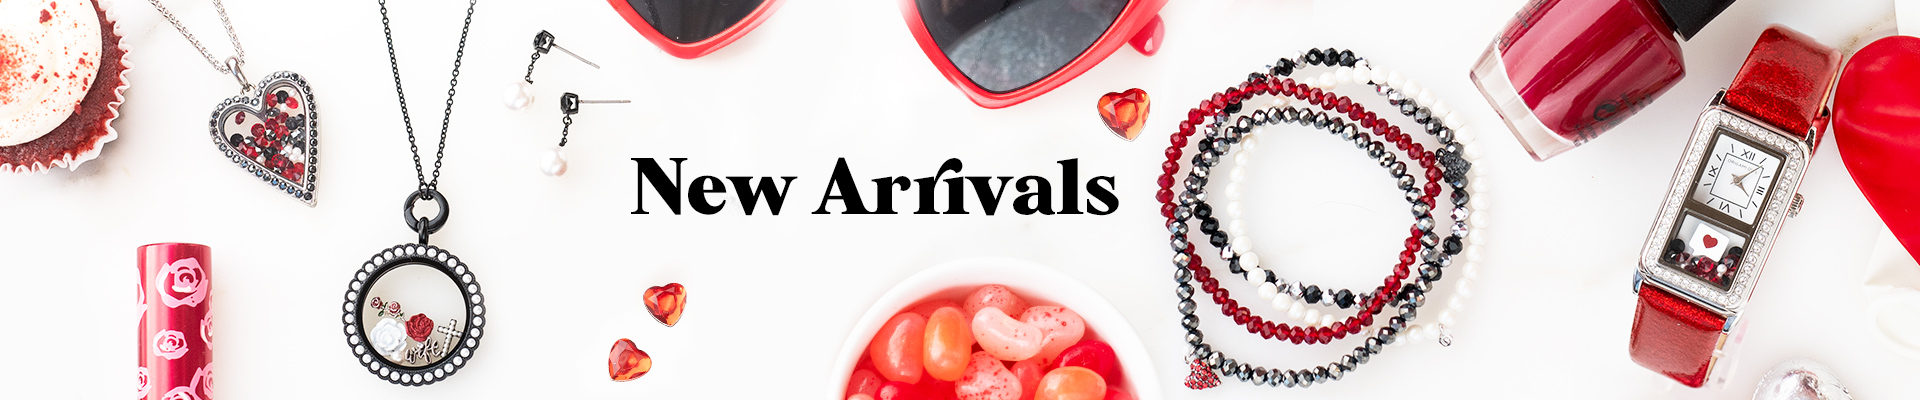 New Arrivals banner